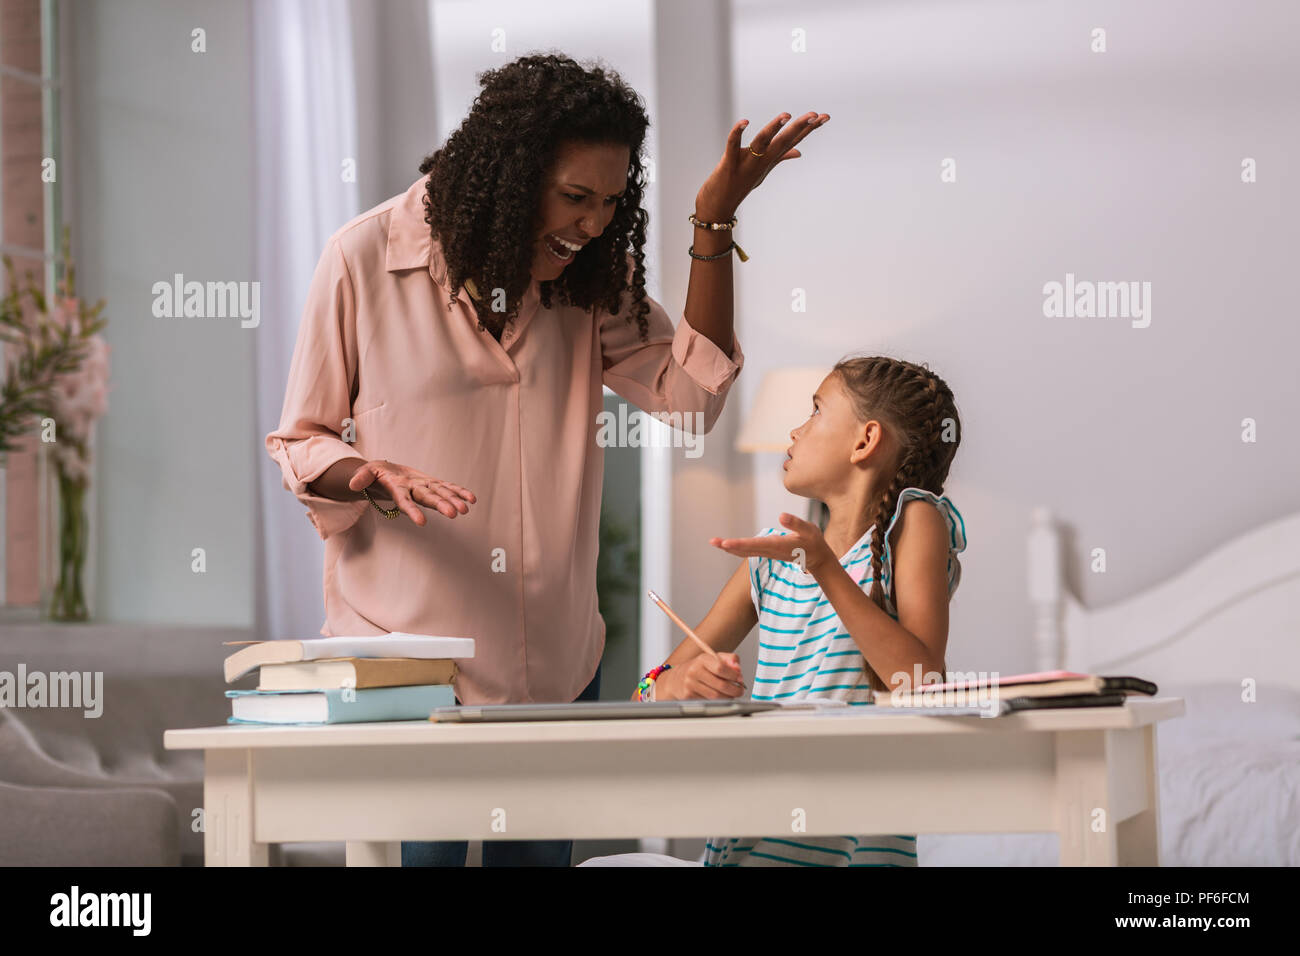 Cheerless angry woman being unhappy with her daughter - Stock Image